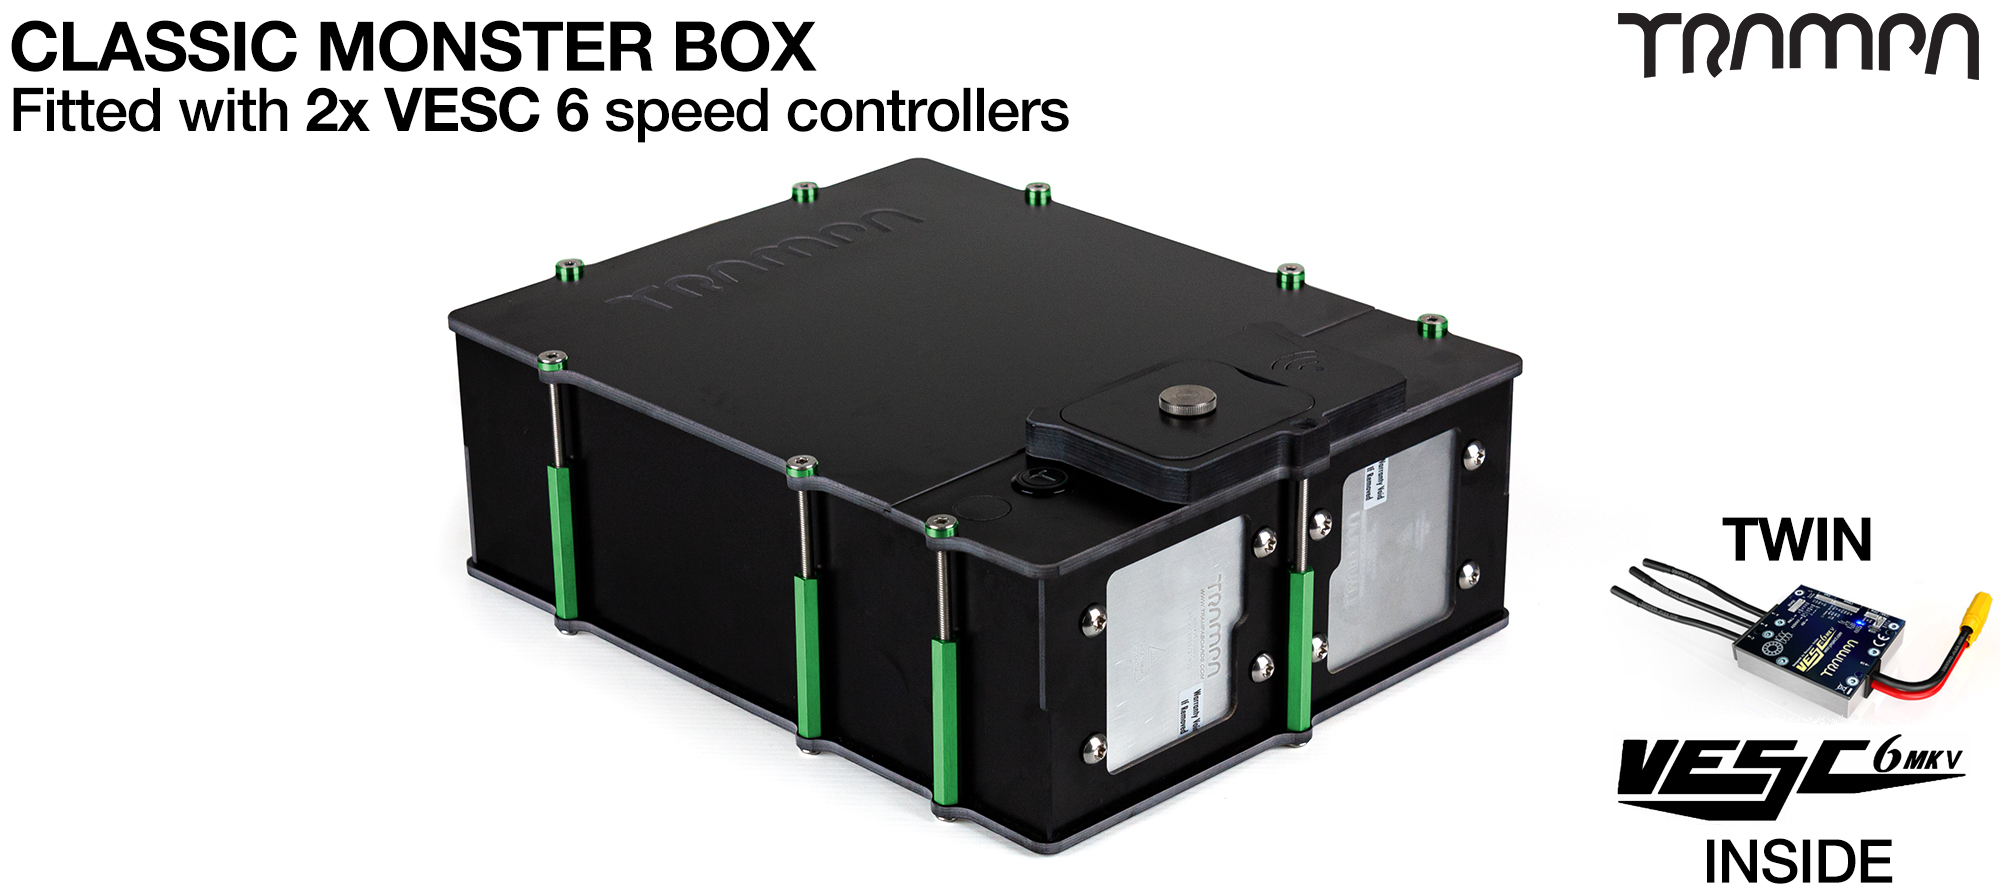 Classic MONSTER Box with 2x VESC & Cable Kit to fit 2x Li-Po cells (+£75)